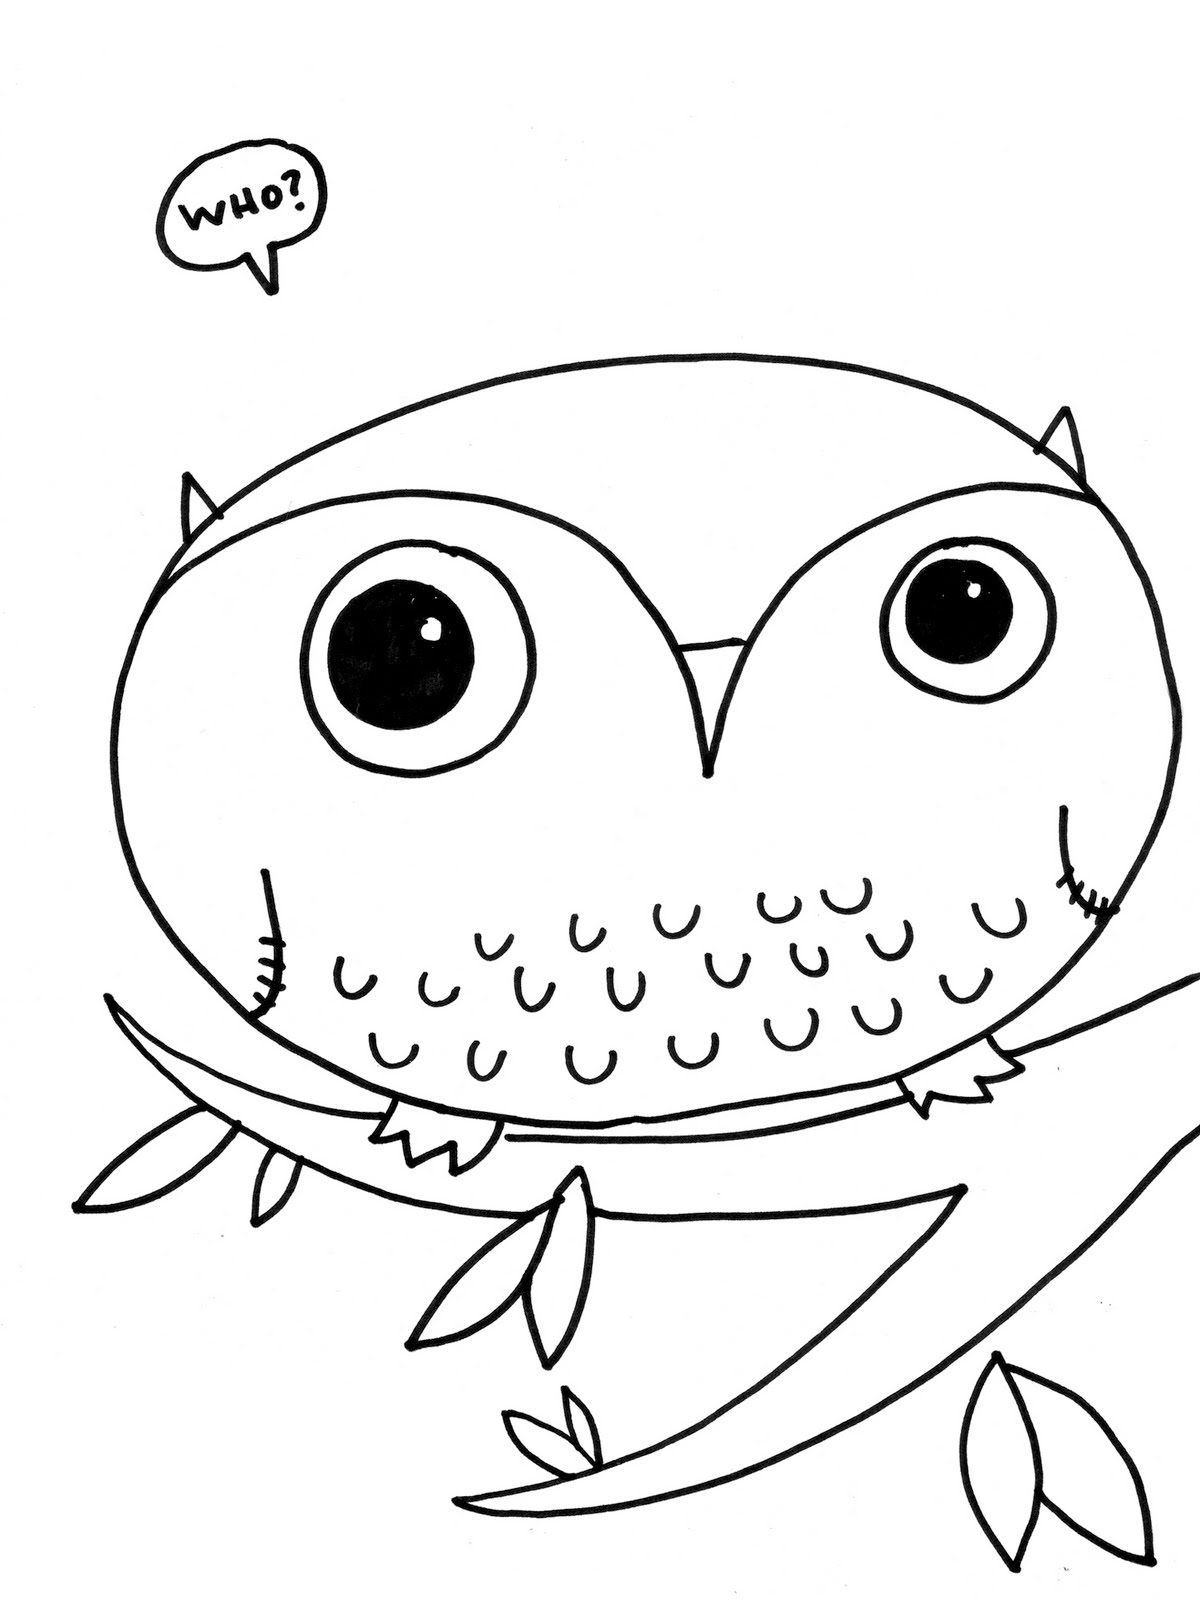 Adult Best Owl Coloring Pages Free Images cute free printable owl coloring pages for kids gallery images